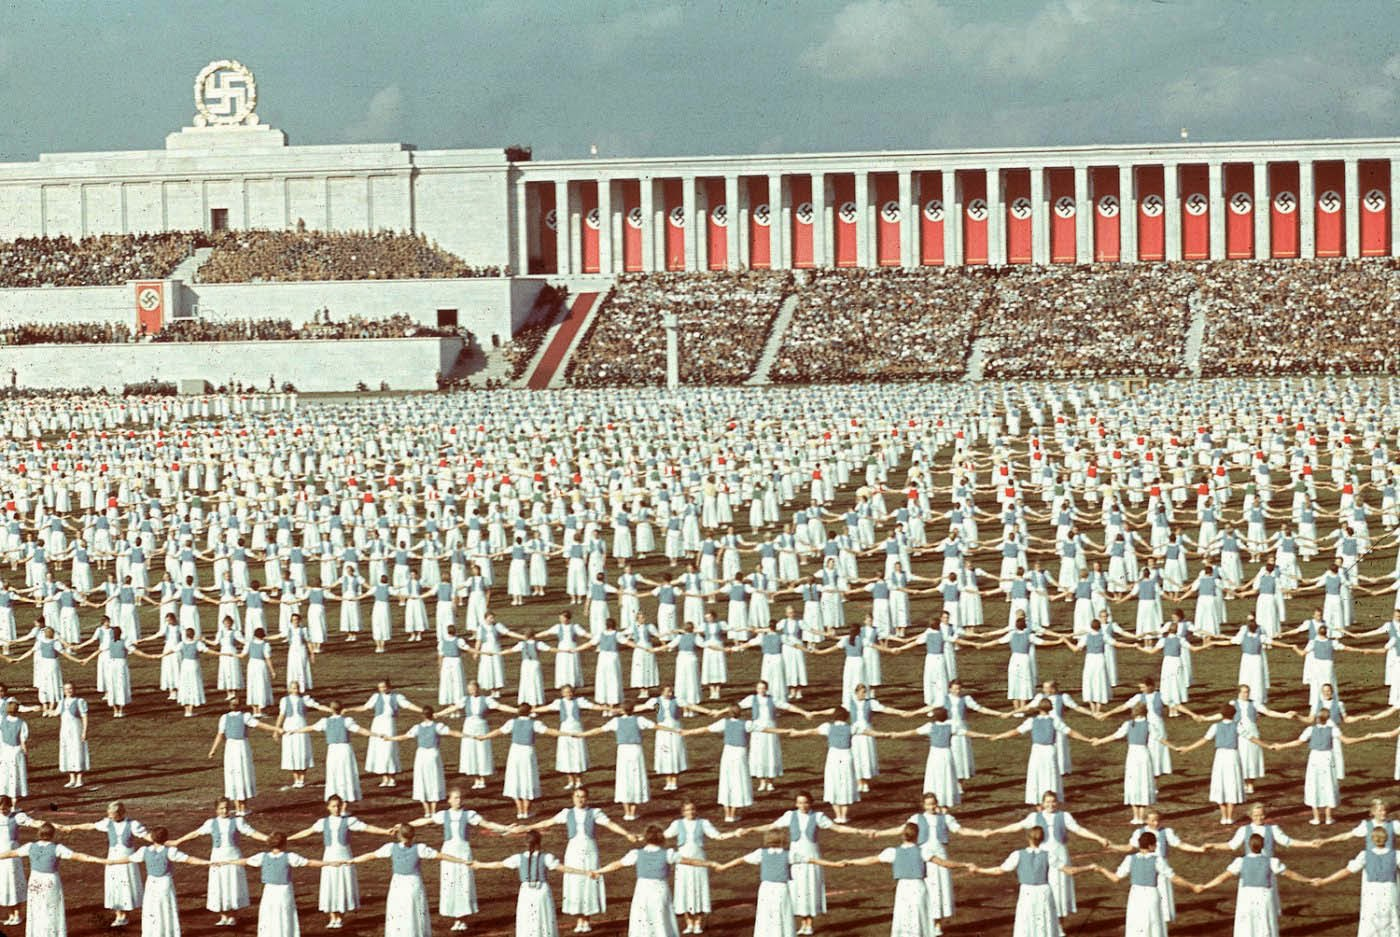 League of German Girls dancing during the 1938 Reich Party Congress, Nuremberg, Germany..jpg